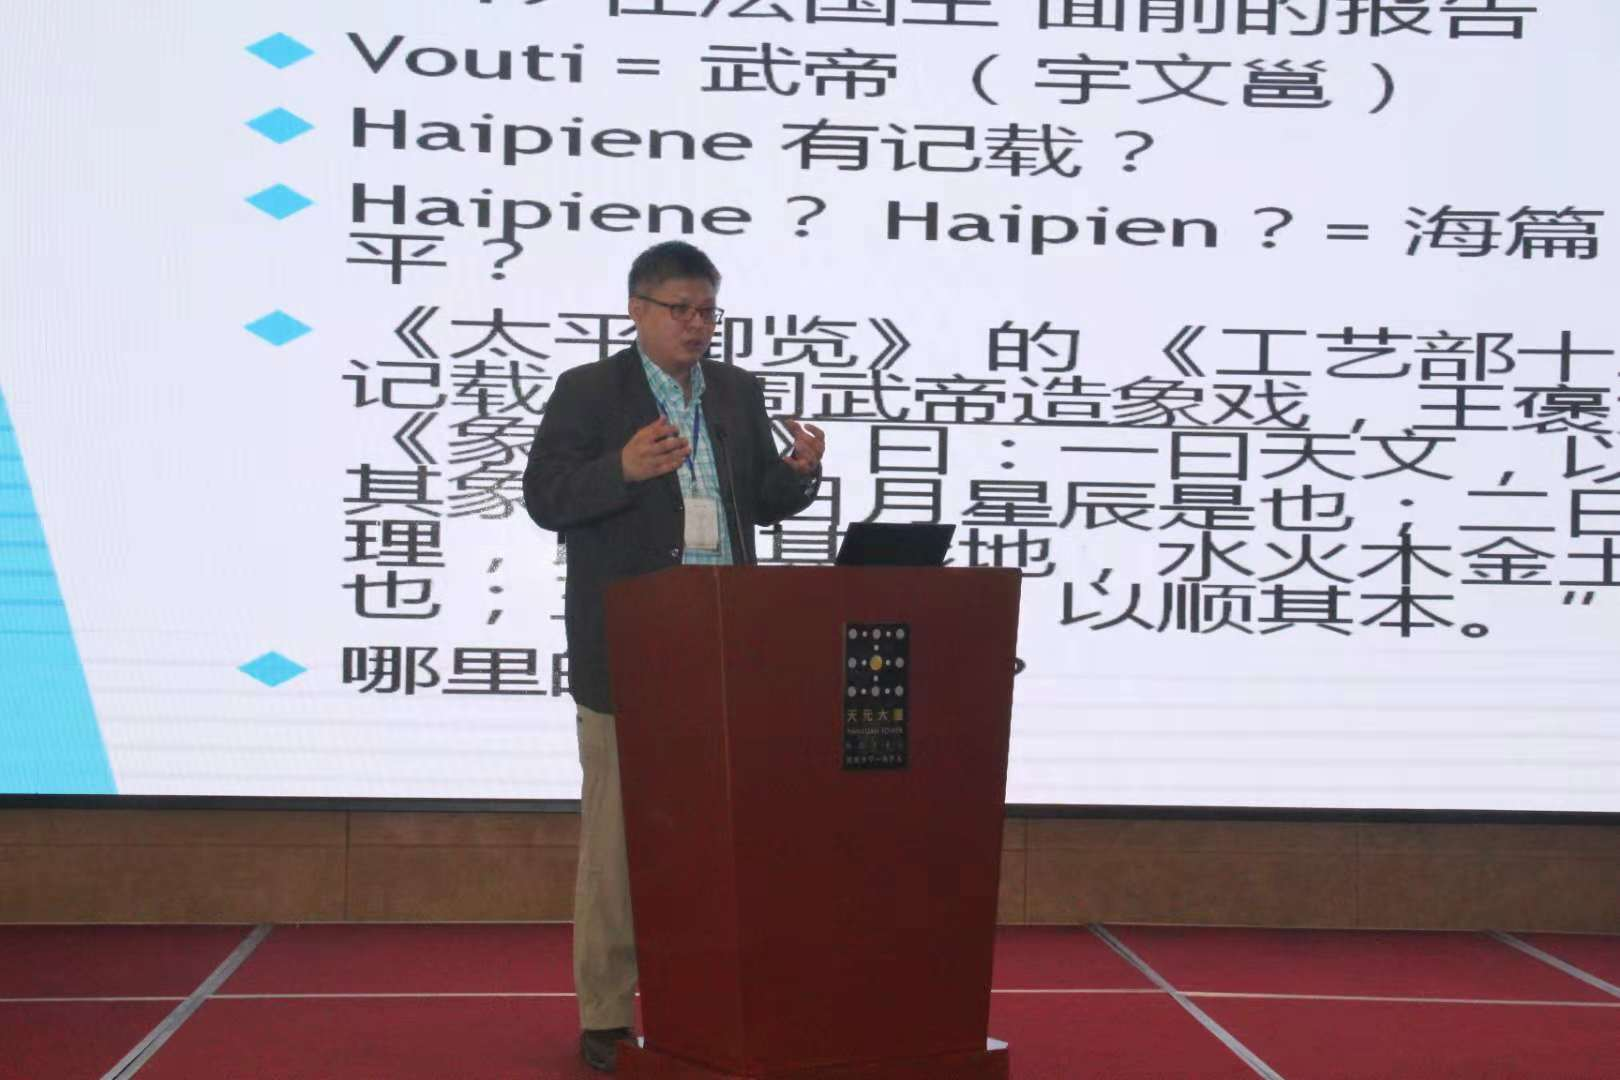 Presenting a paper on Xiangqi History in 2018 at the annual Hangzhou Chess Conference